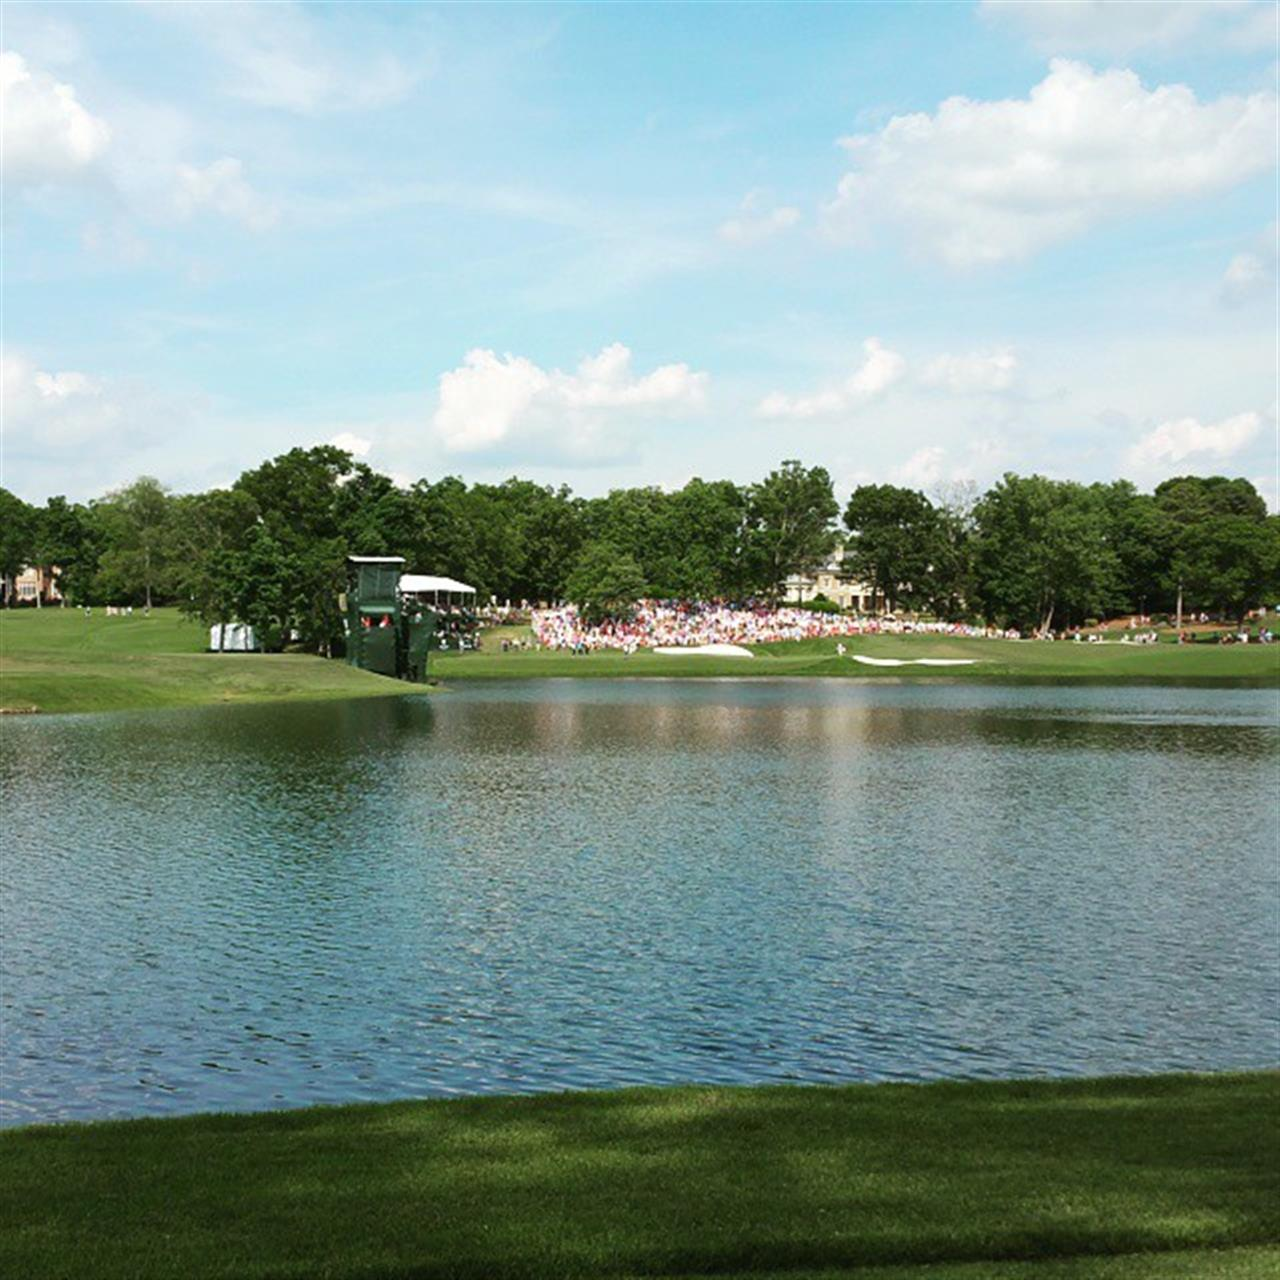 A crowded hill near the 14th green at Quail Hollow Country Club in Charlotte, NC. #leadingrelocal #pga